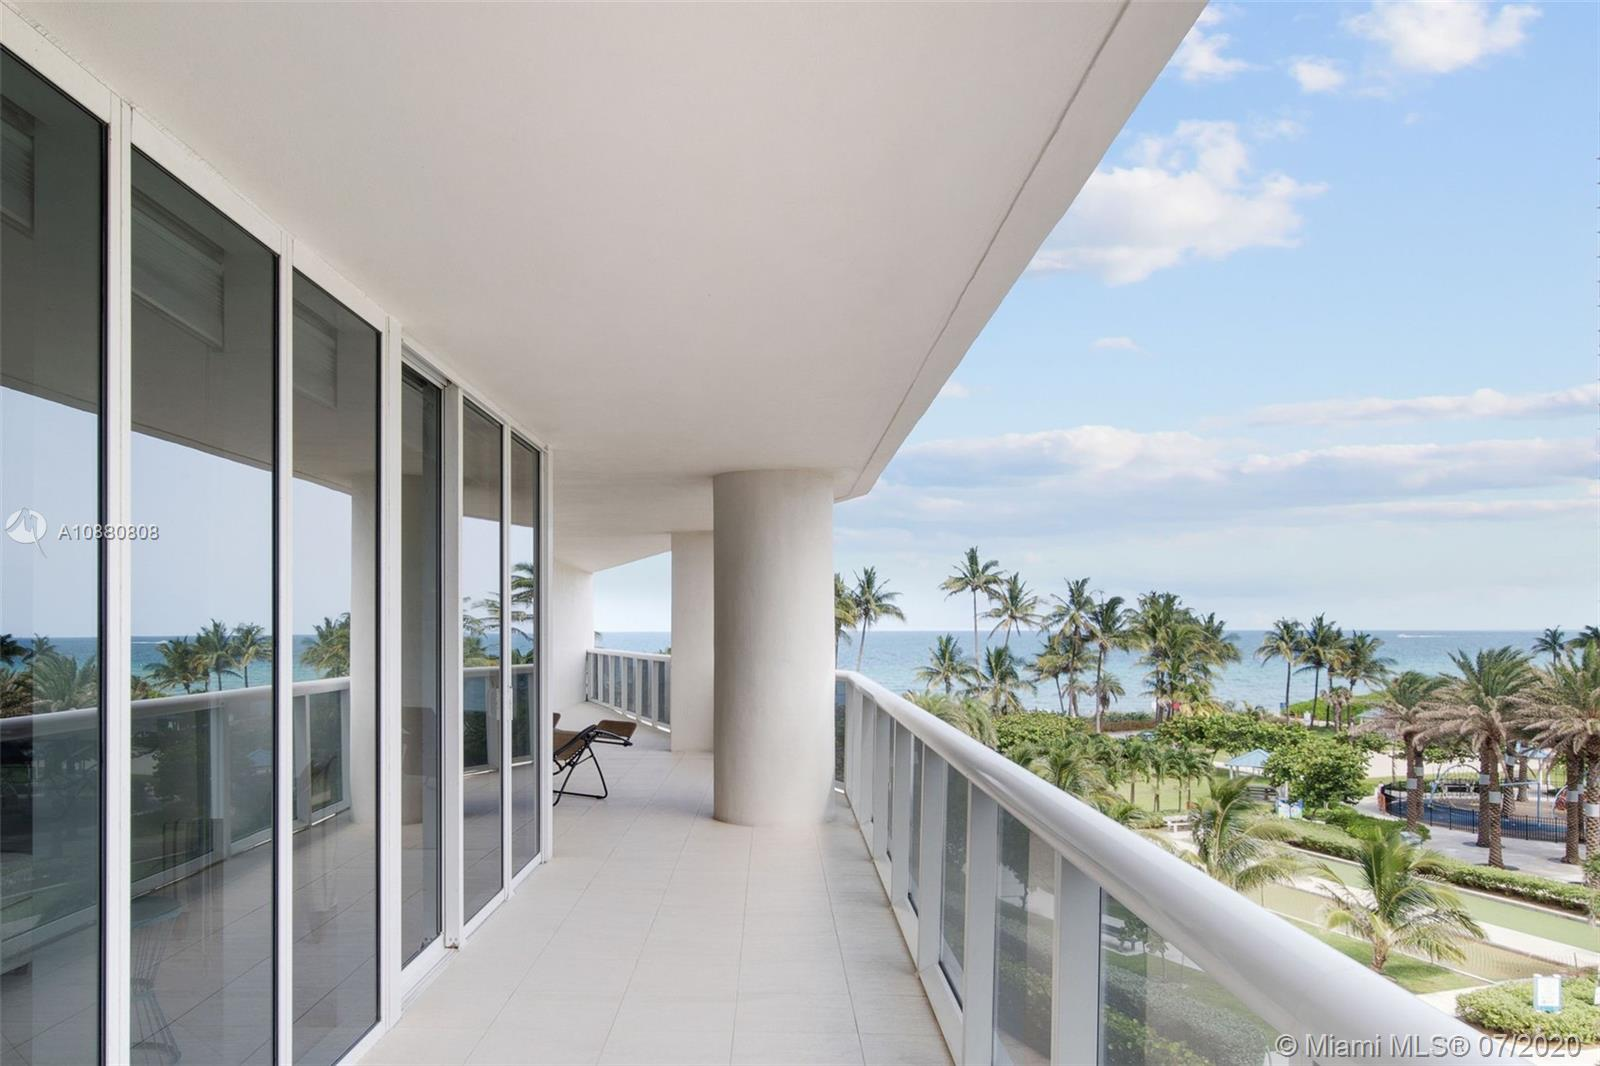 Beach Club I #405 - 1850 S Ocean Dr #405, Hallandale Beach, FL 33009